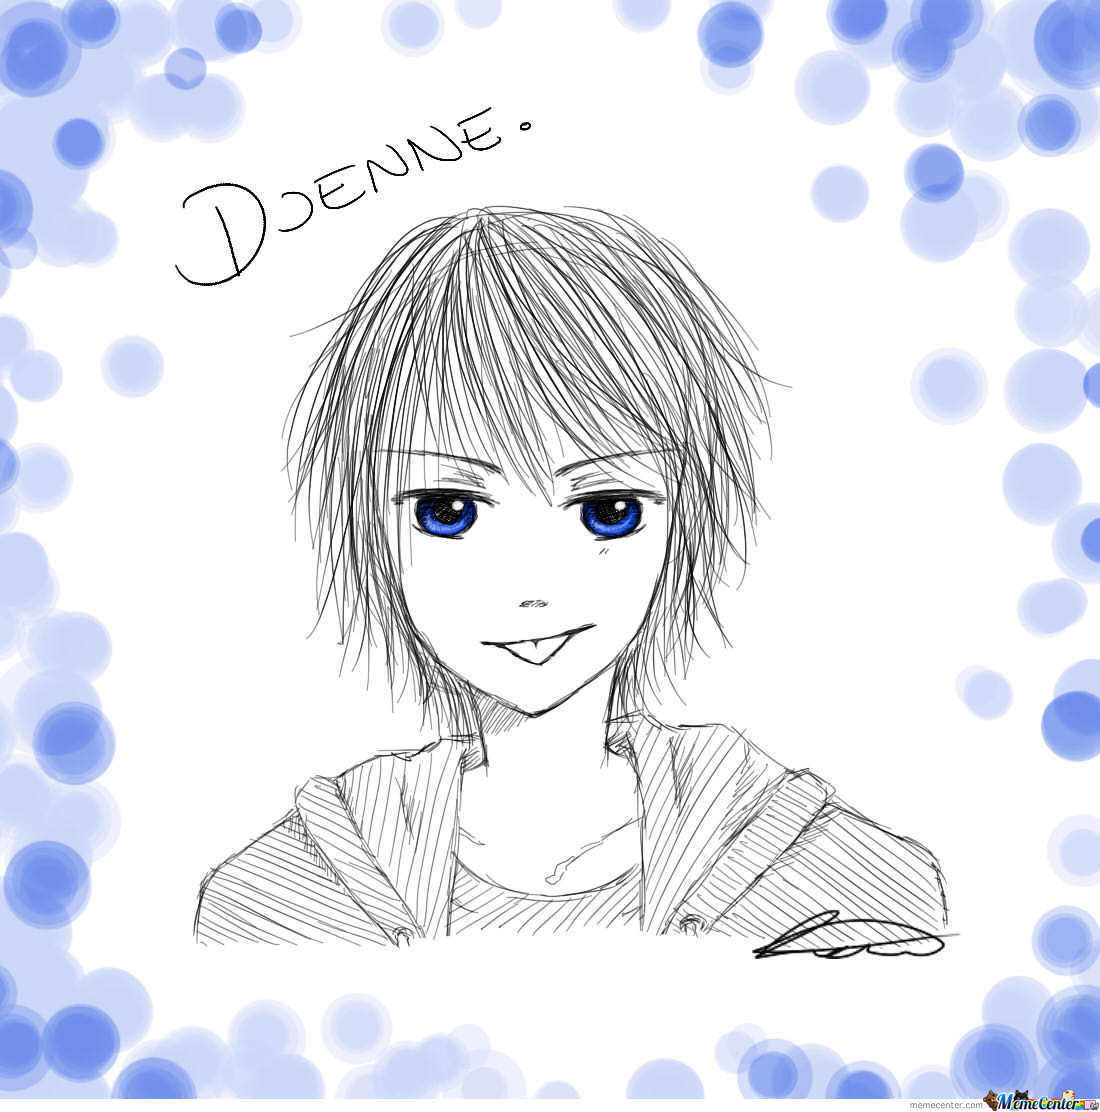 Dammit Djenne, What's Your Eye Color..?!